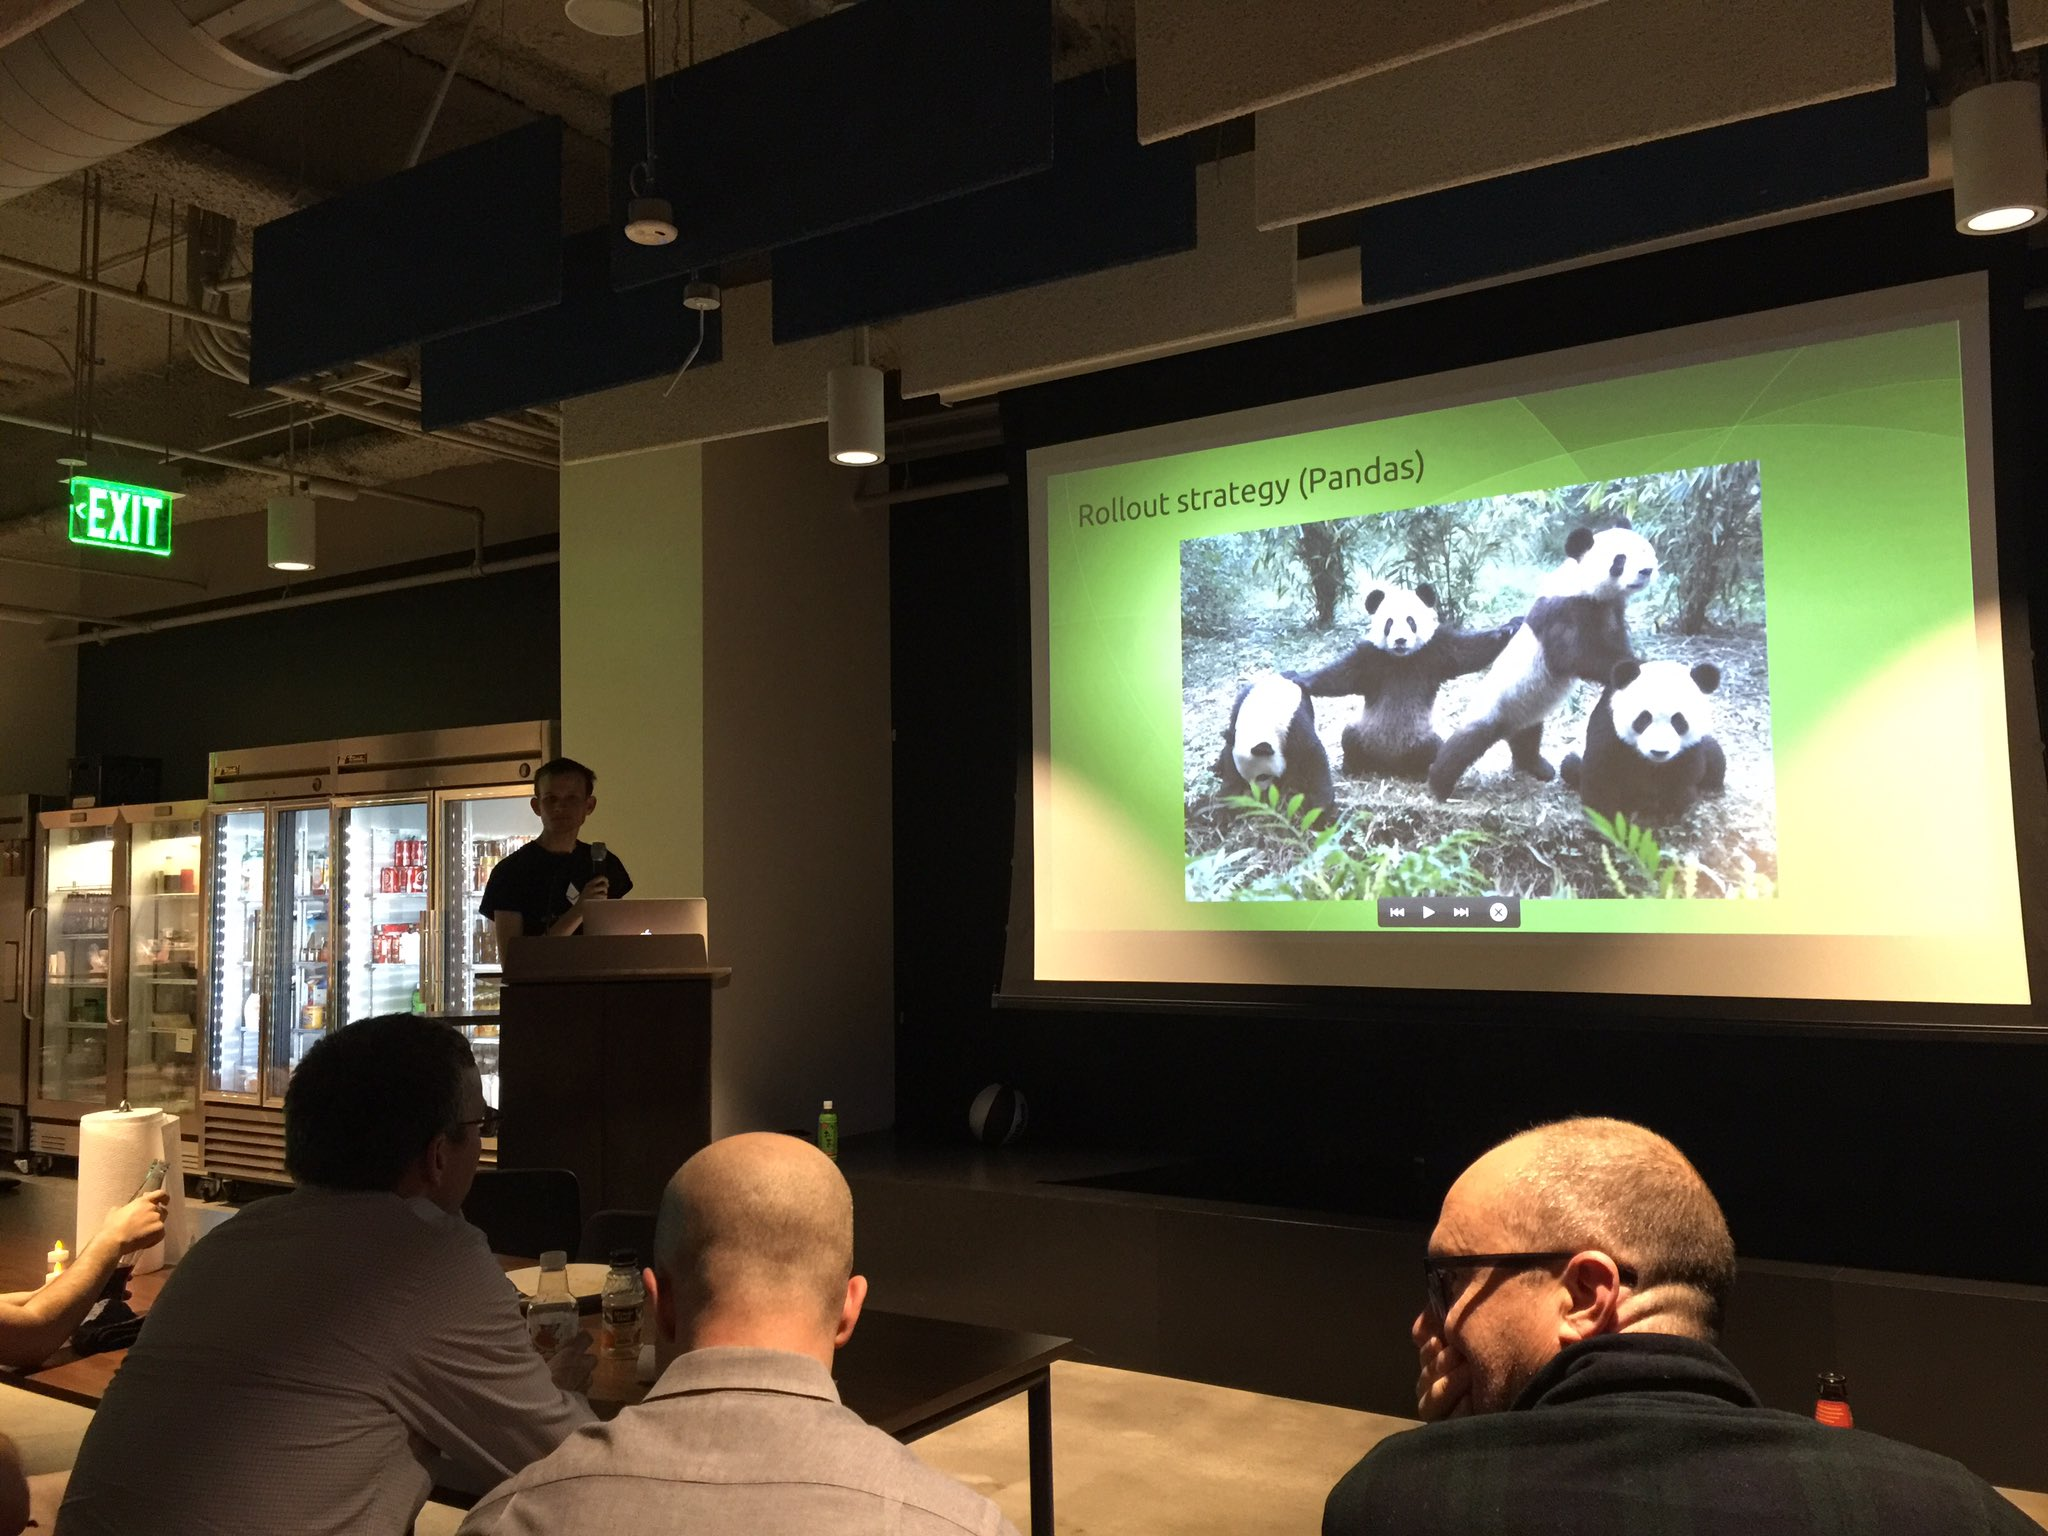 .@VitalikButerin talking #ethereum at @coinbase HQ. And Pandas! https://t.co/gTP5l6IUm0